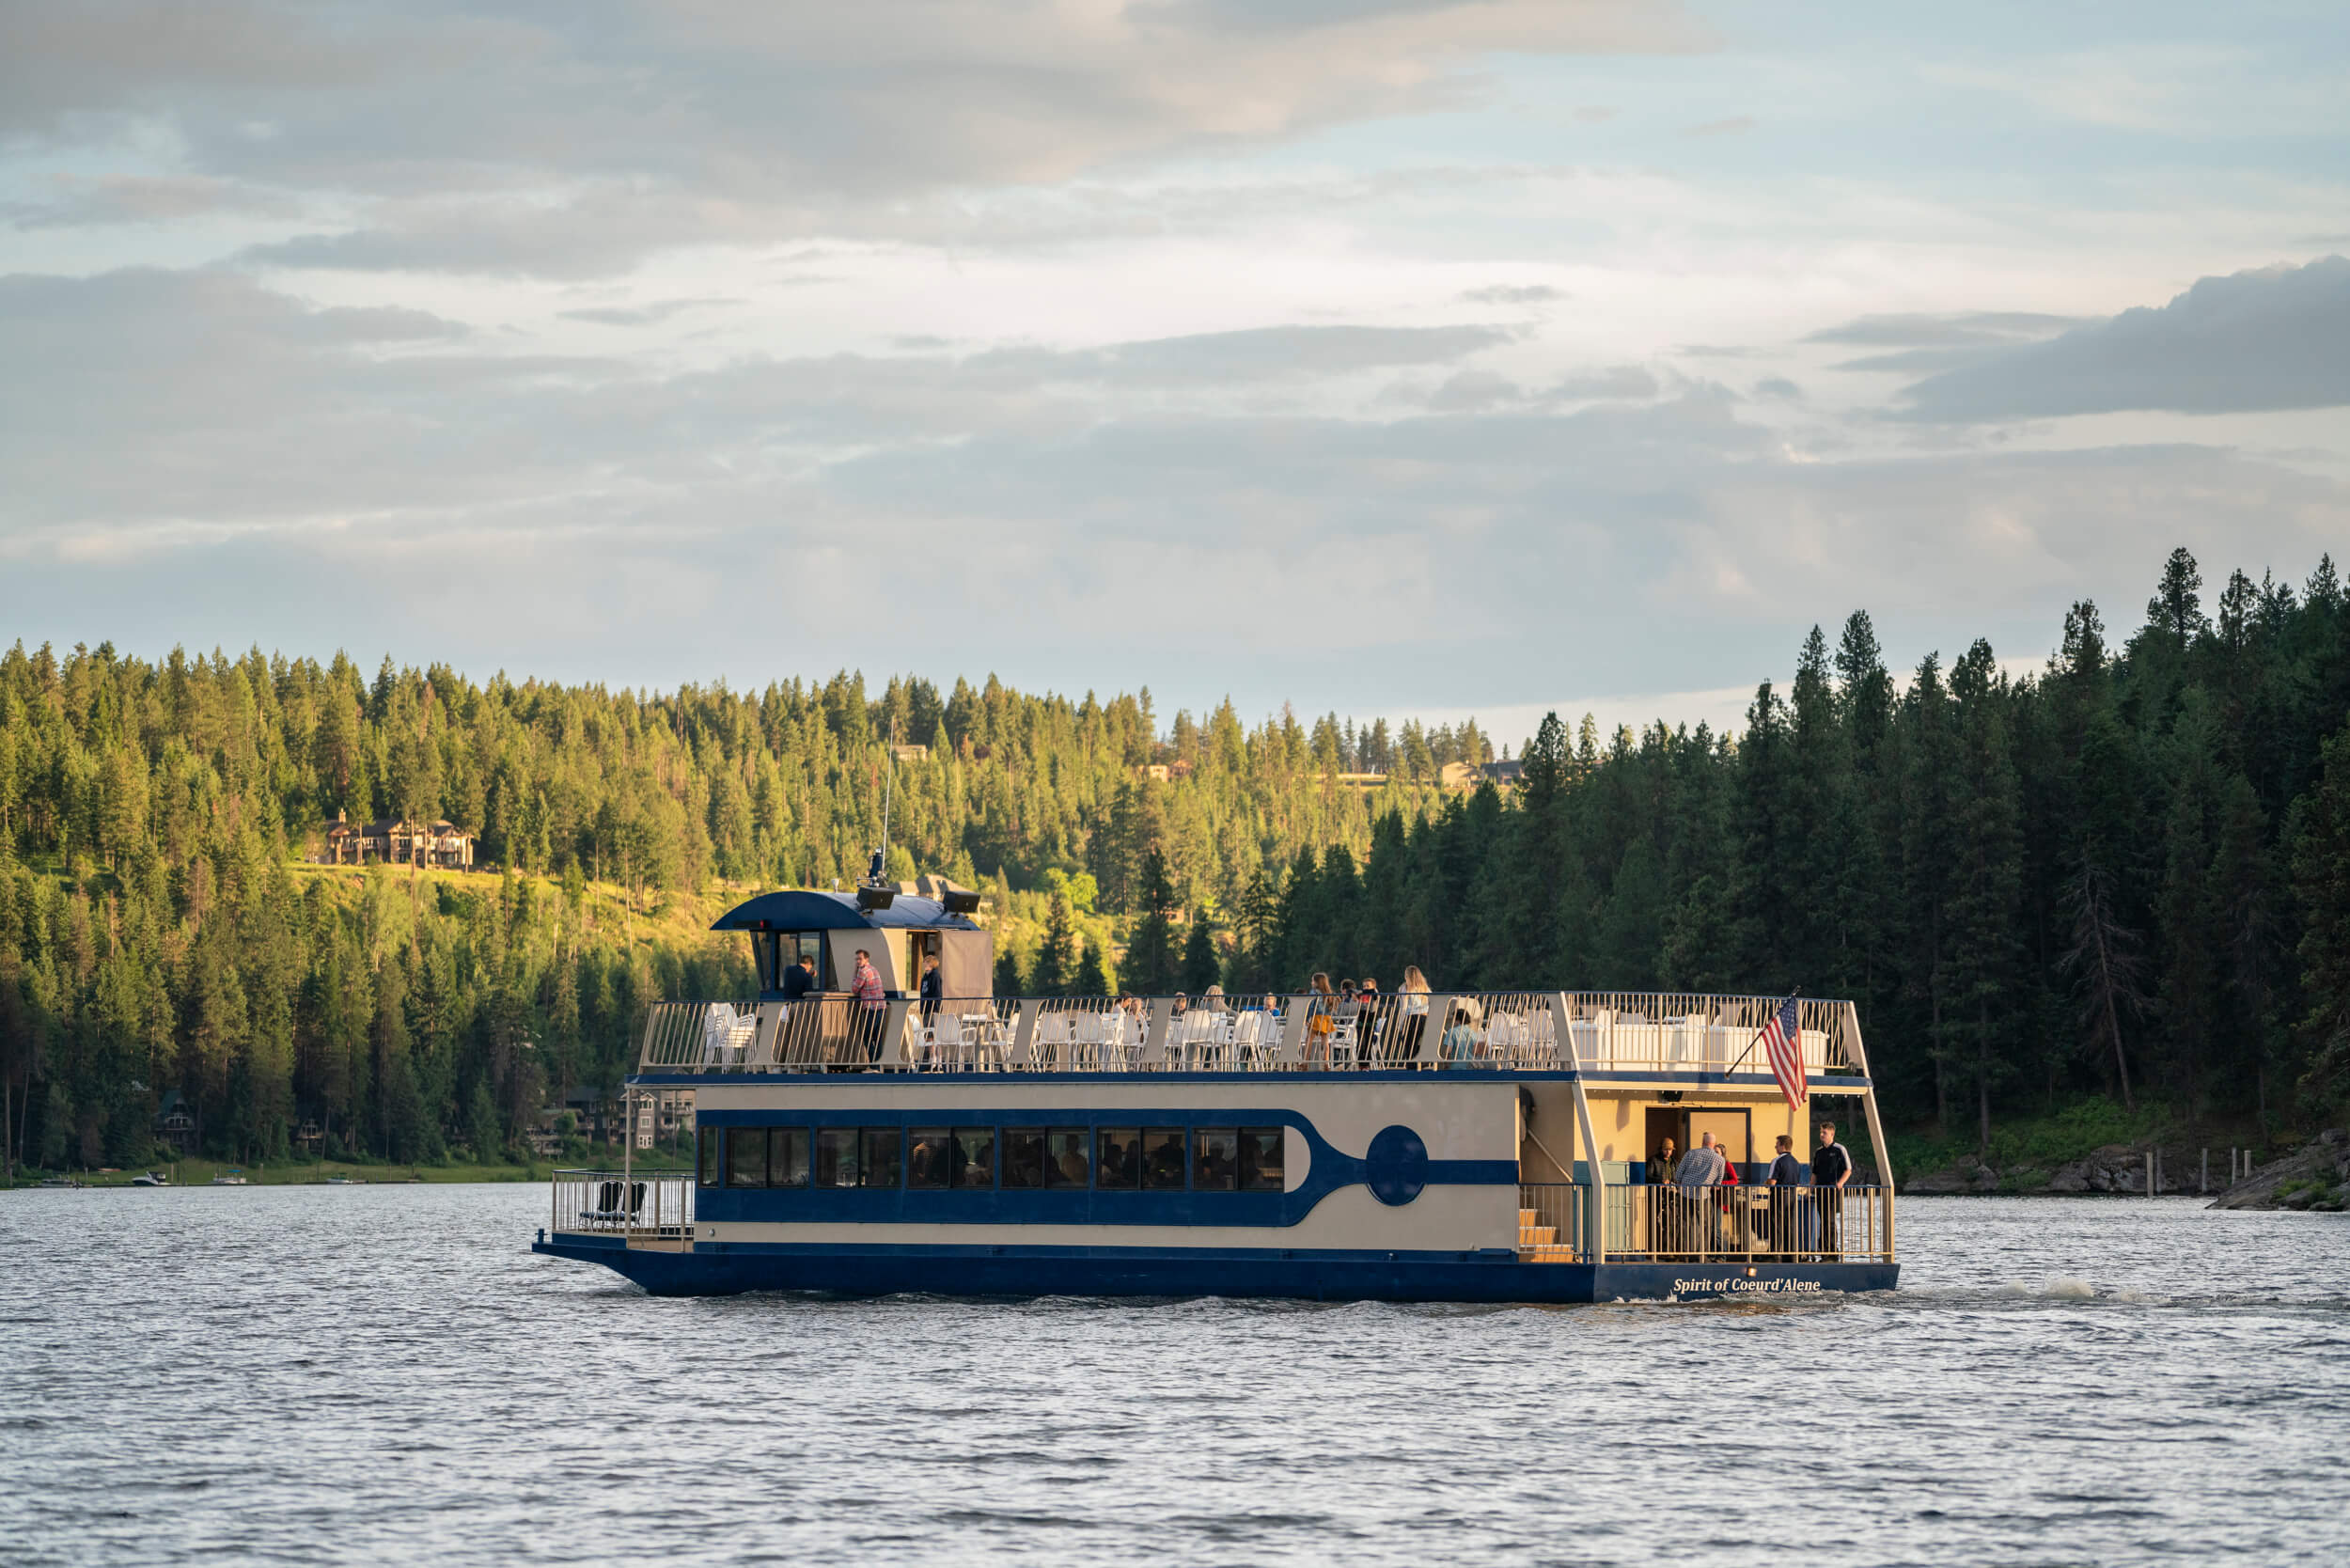 CDA Cruise ship with passengers on Lake Coeur d'Alene surrounded by trees